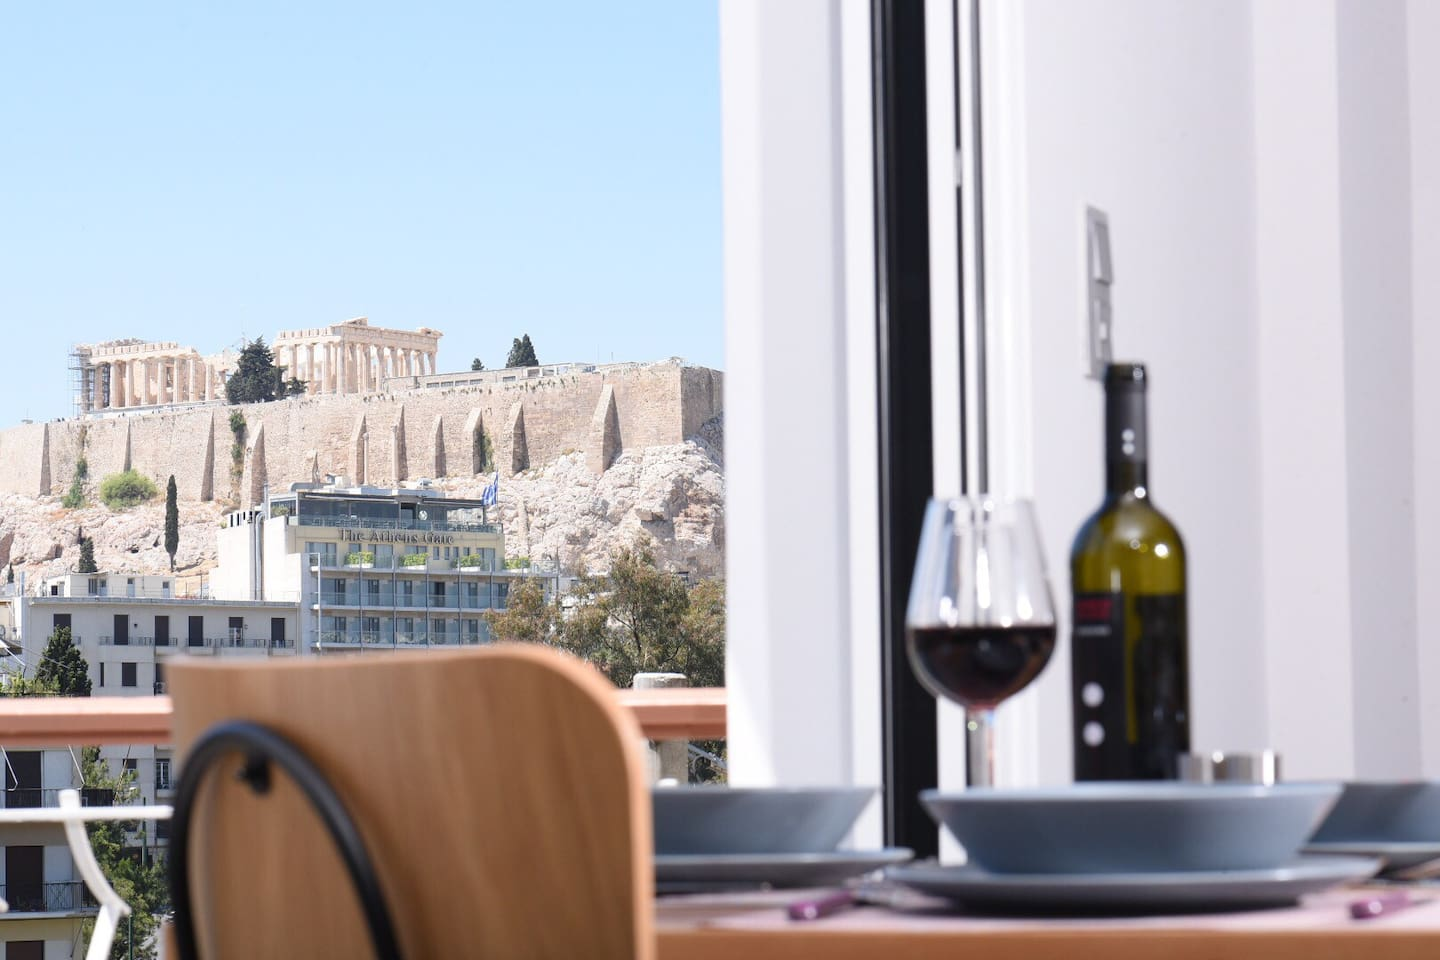 Acropolis view from the balcony